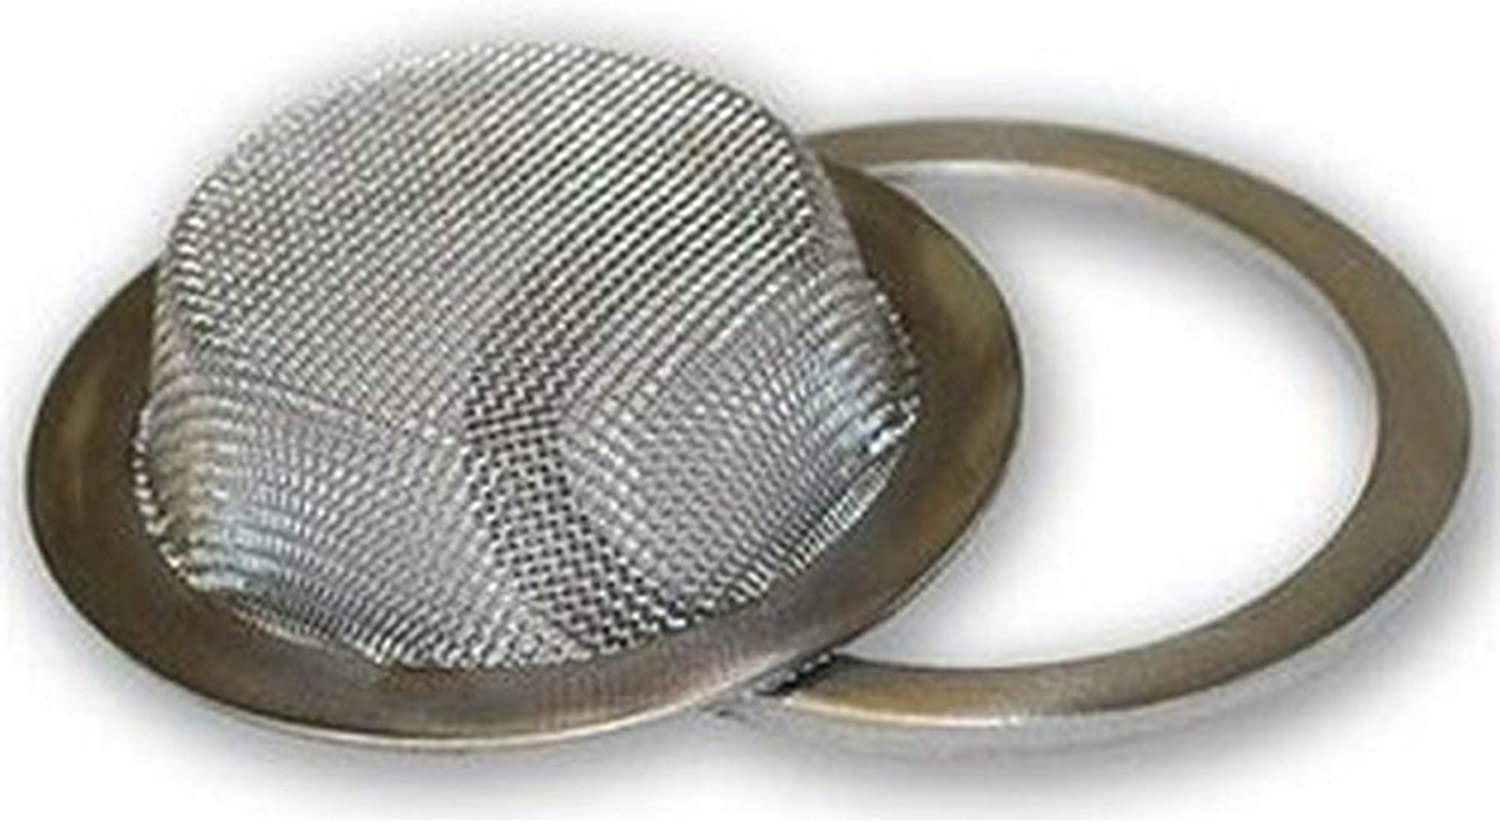 USFS Approved Spark Arrestor Screen Fits 2002-2007 Honda CRF450R